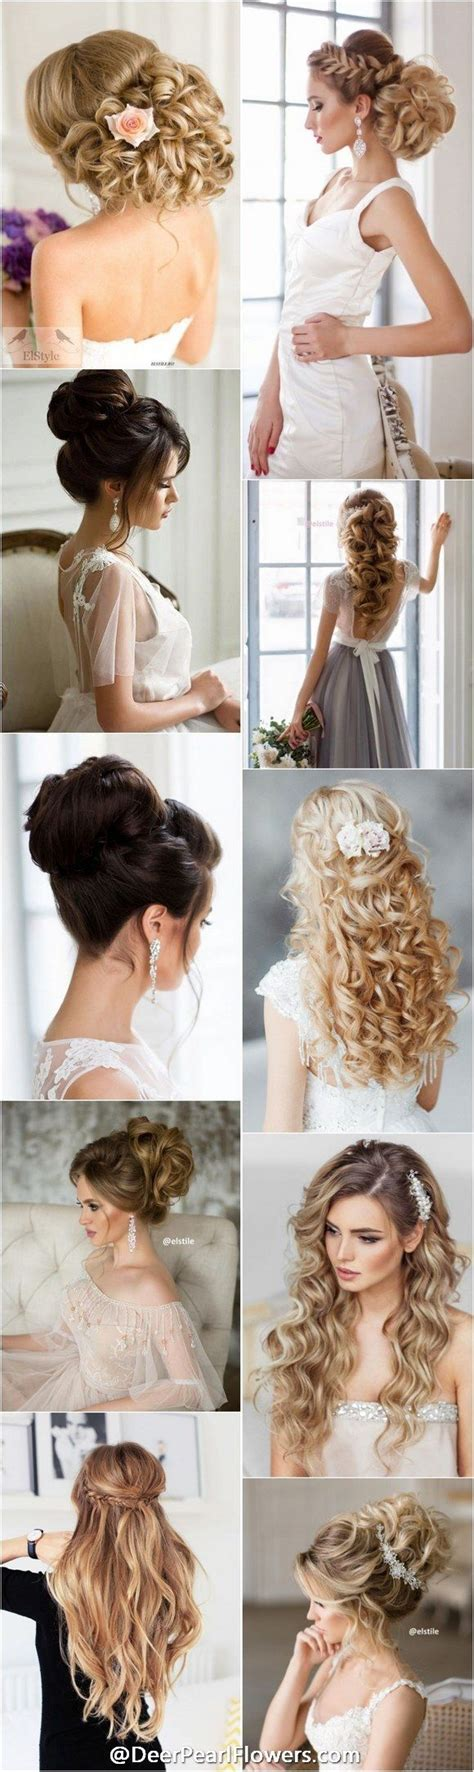 50 Long Wedding Hairstyles from 5 Best Instagram Hairstylists   Updo, Weddings and Hair style